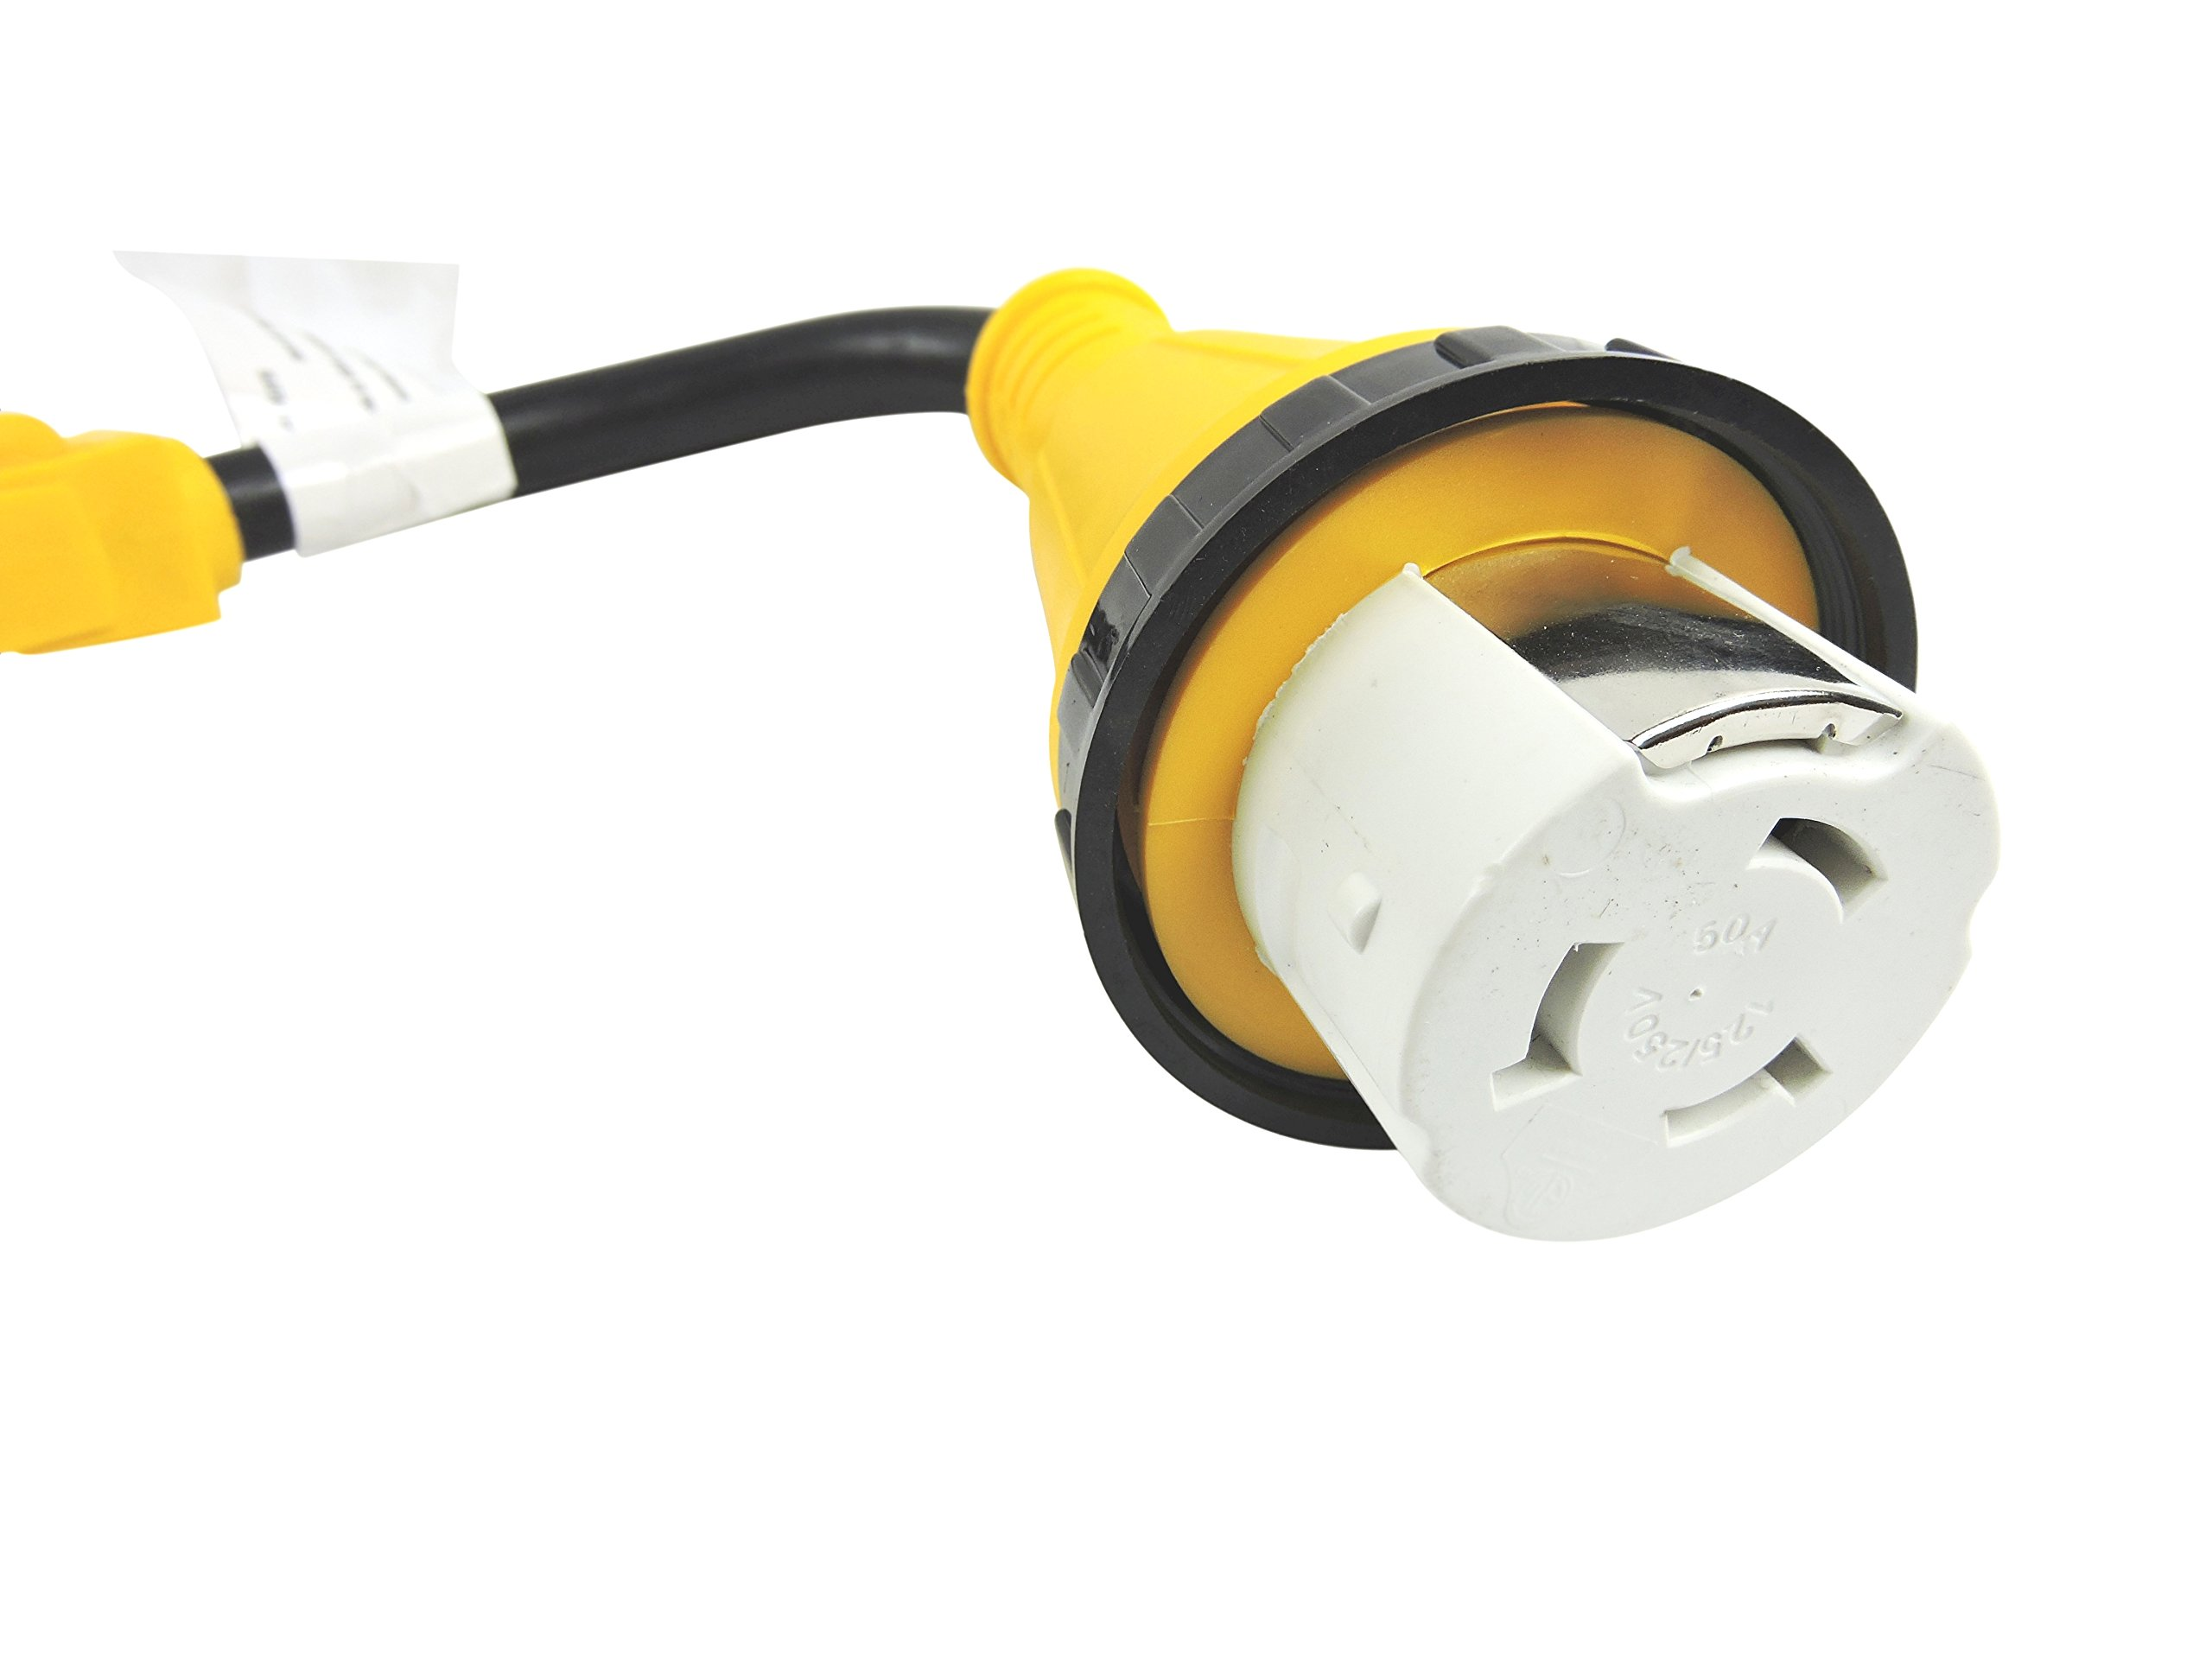 LeisureCords Trailer dogbone power cord plug adapter 15 amp male to 50 amp female locking connector with LED Indicator (15 Male - 50 Female Twist) by Leisure Cords (Image #2)